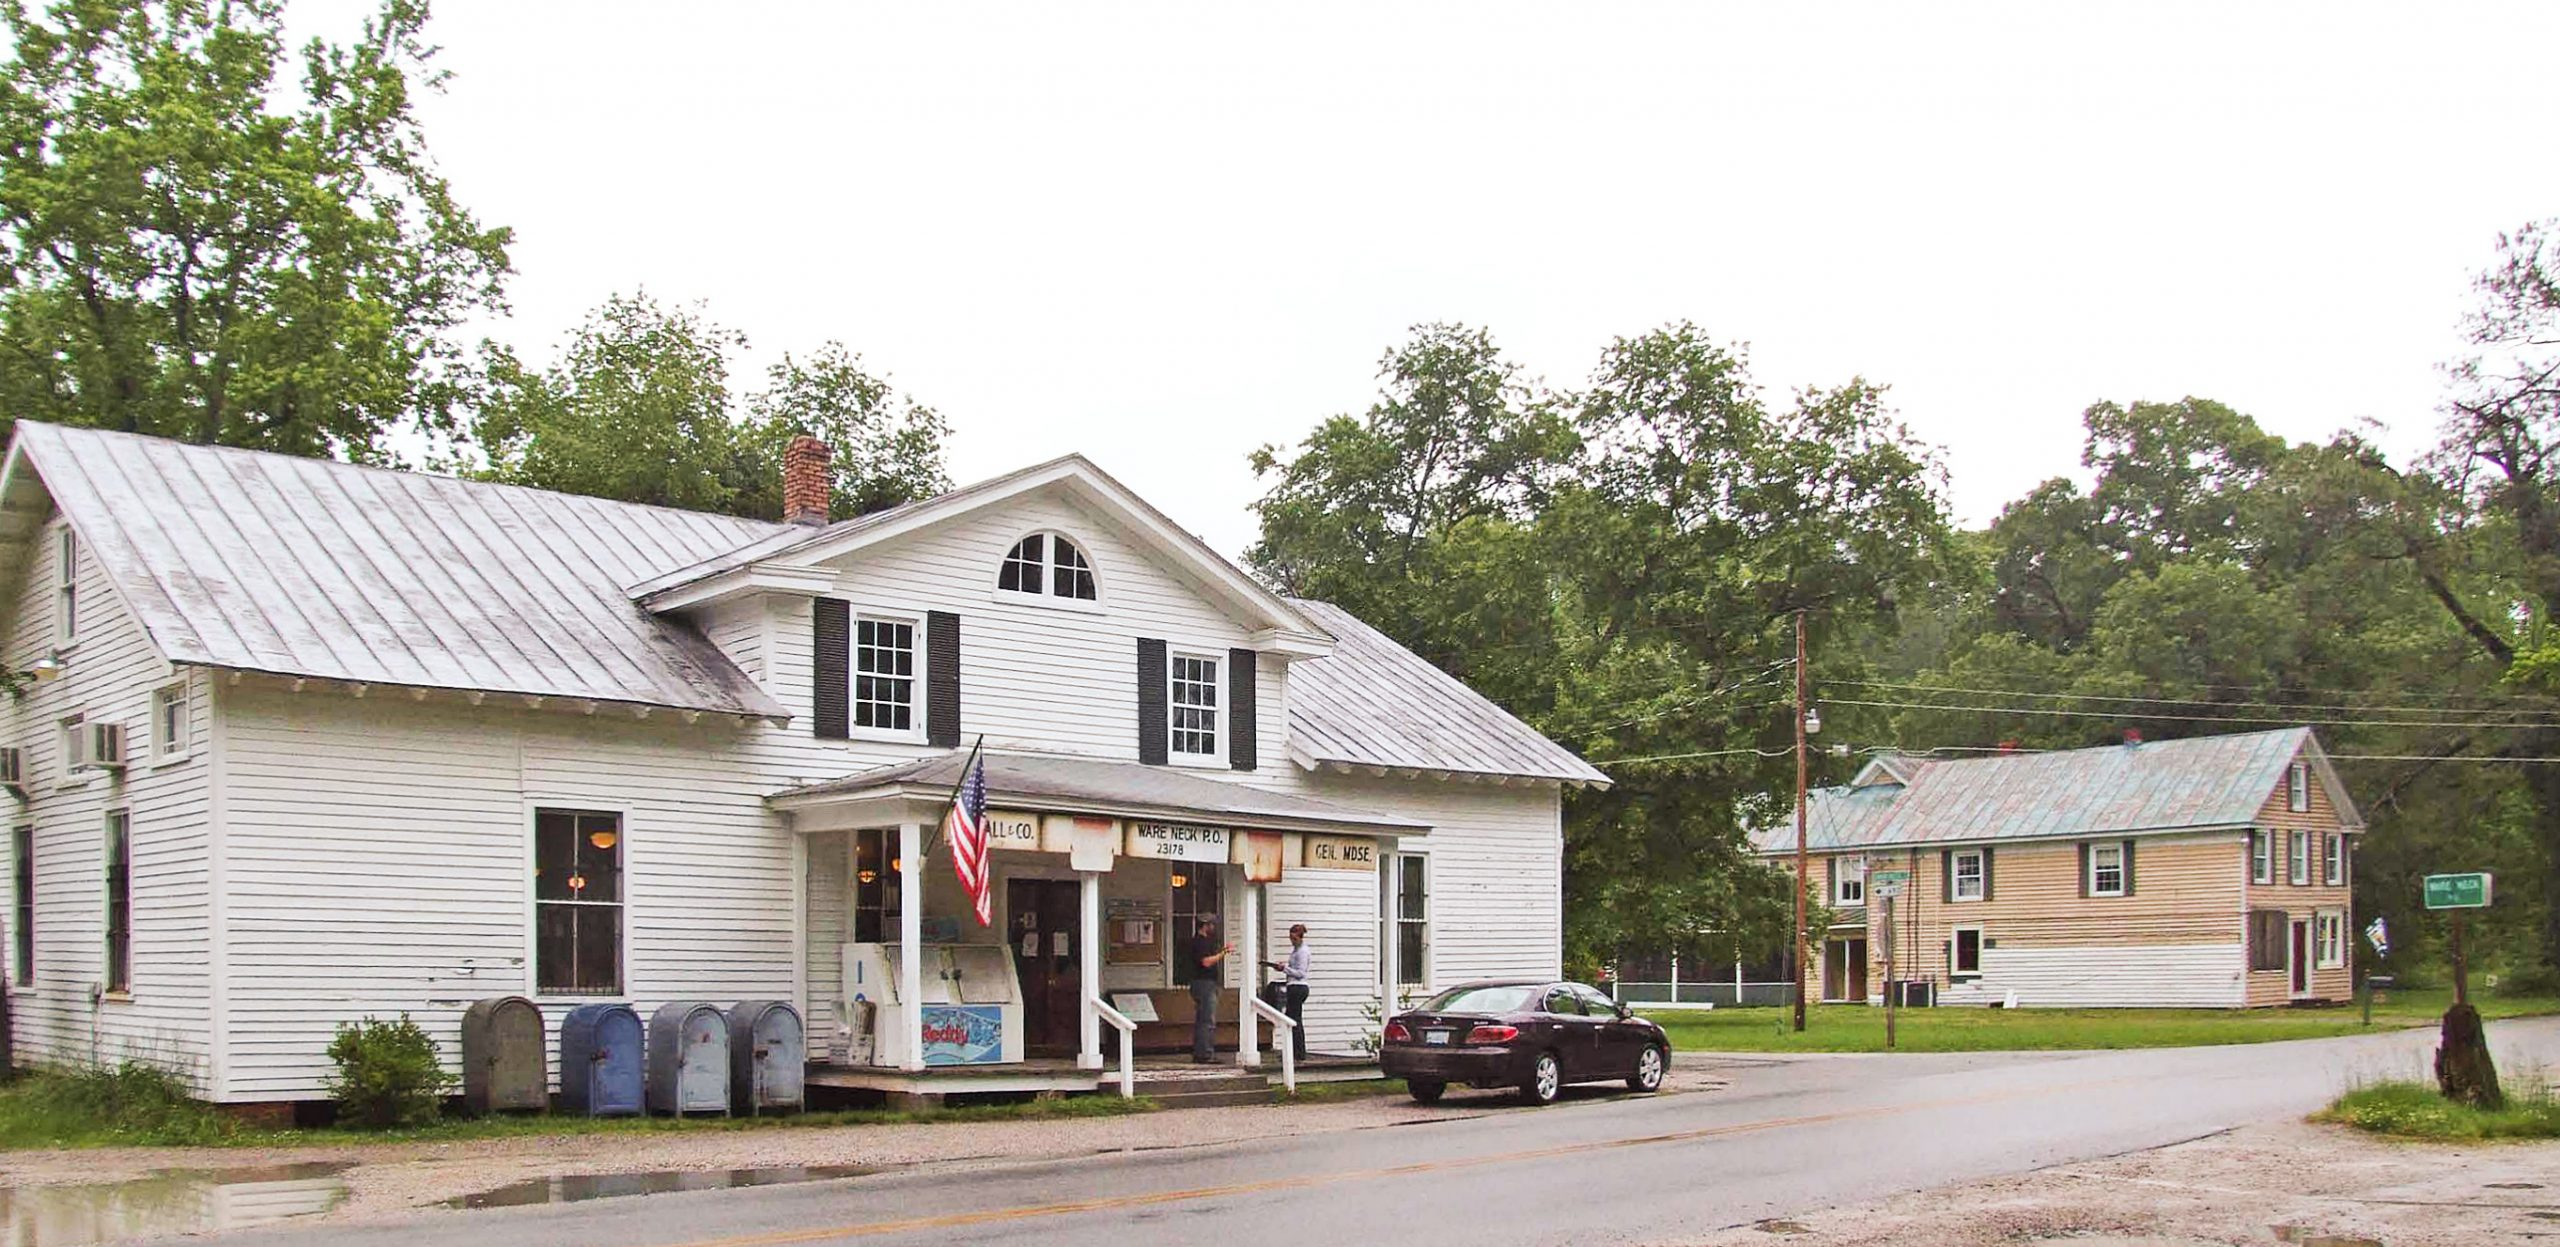 Ware Neck Store and Post Office